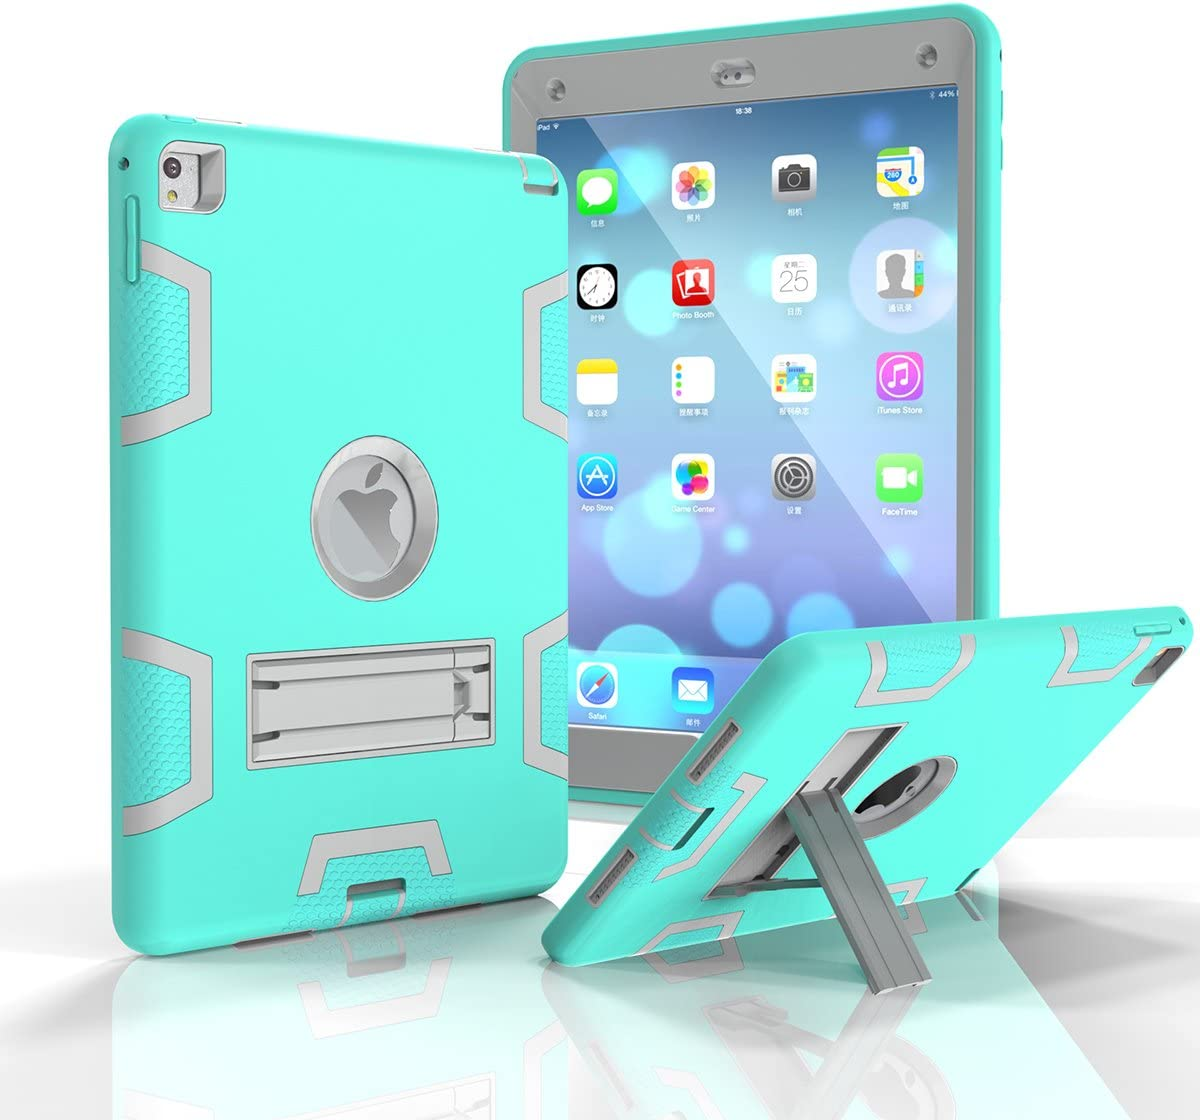 iPad Air 2 Case, Shock Absorption High Impact Resistant Hybrid Protective Case Cover for iPad Air 2 (T-Mint Green/Gray)